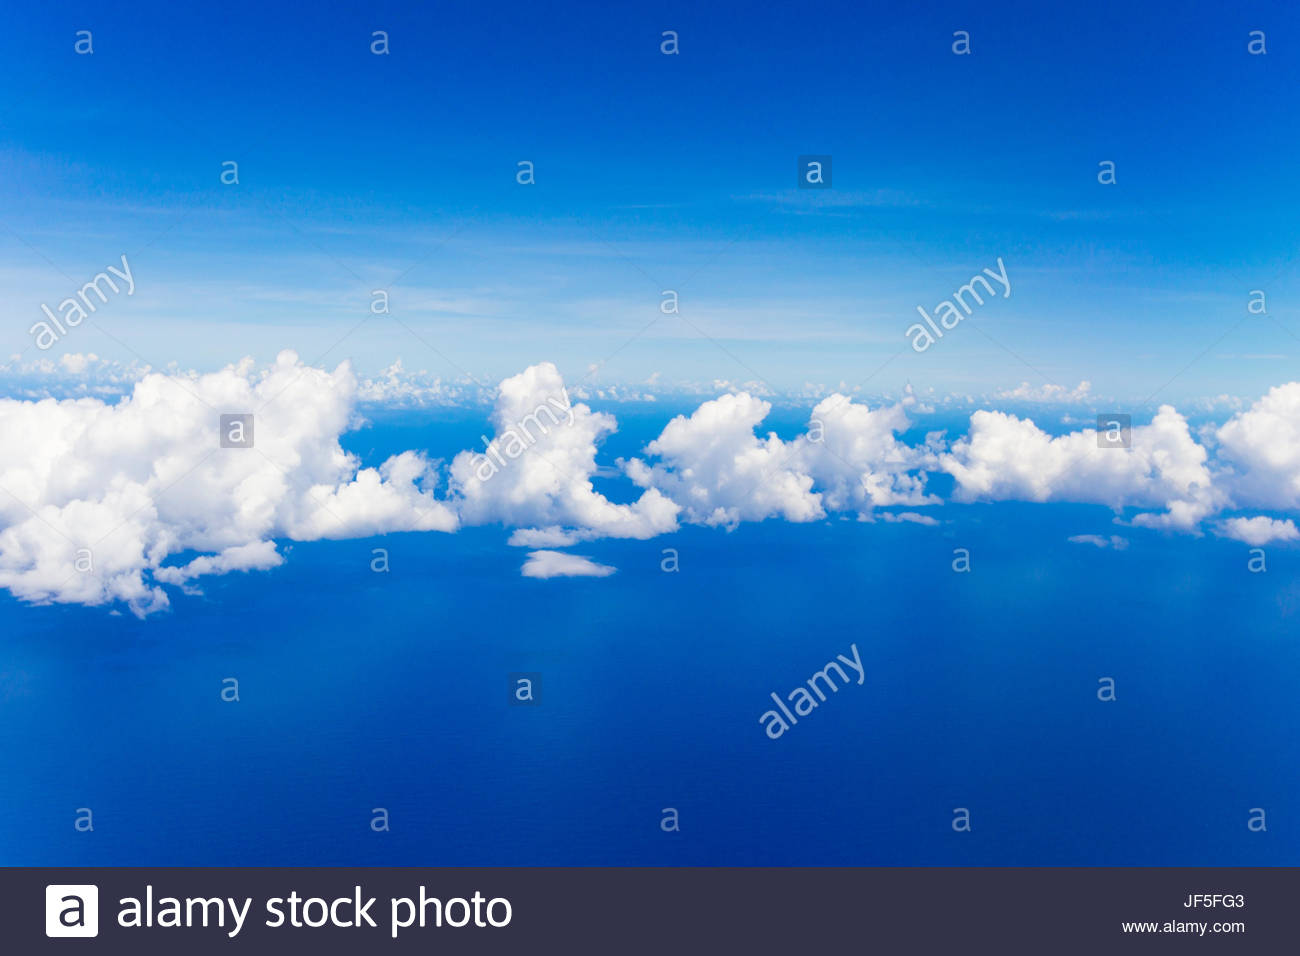 Cumulus clouds floating above flat calm seas on the Atlantic Ocean, somewhere near the Bahamas. - Stock Image